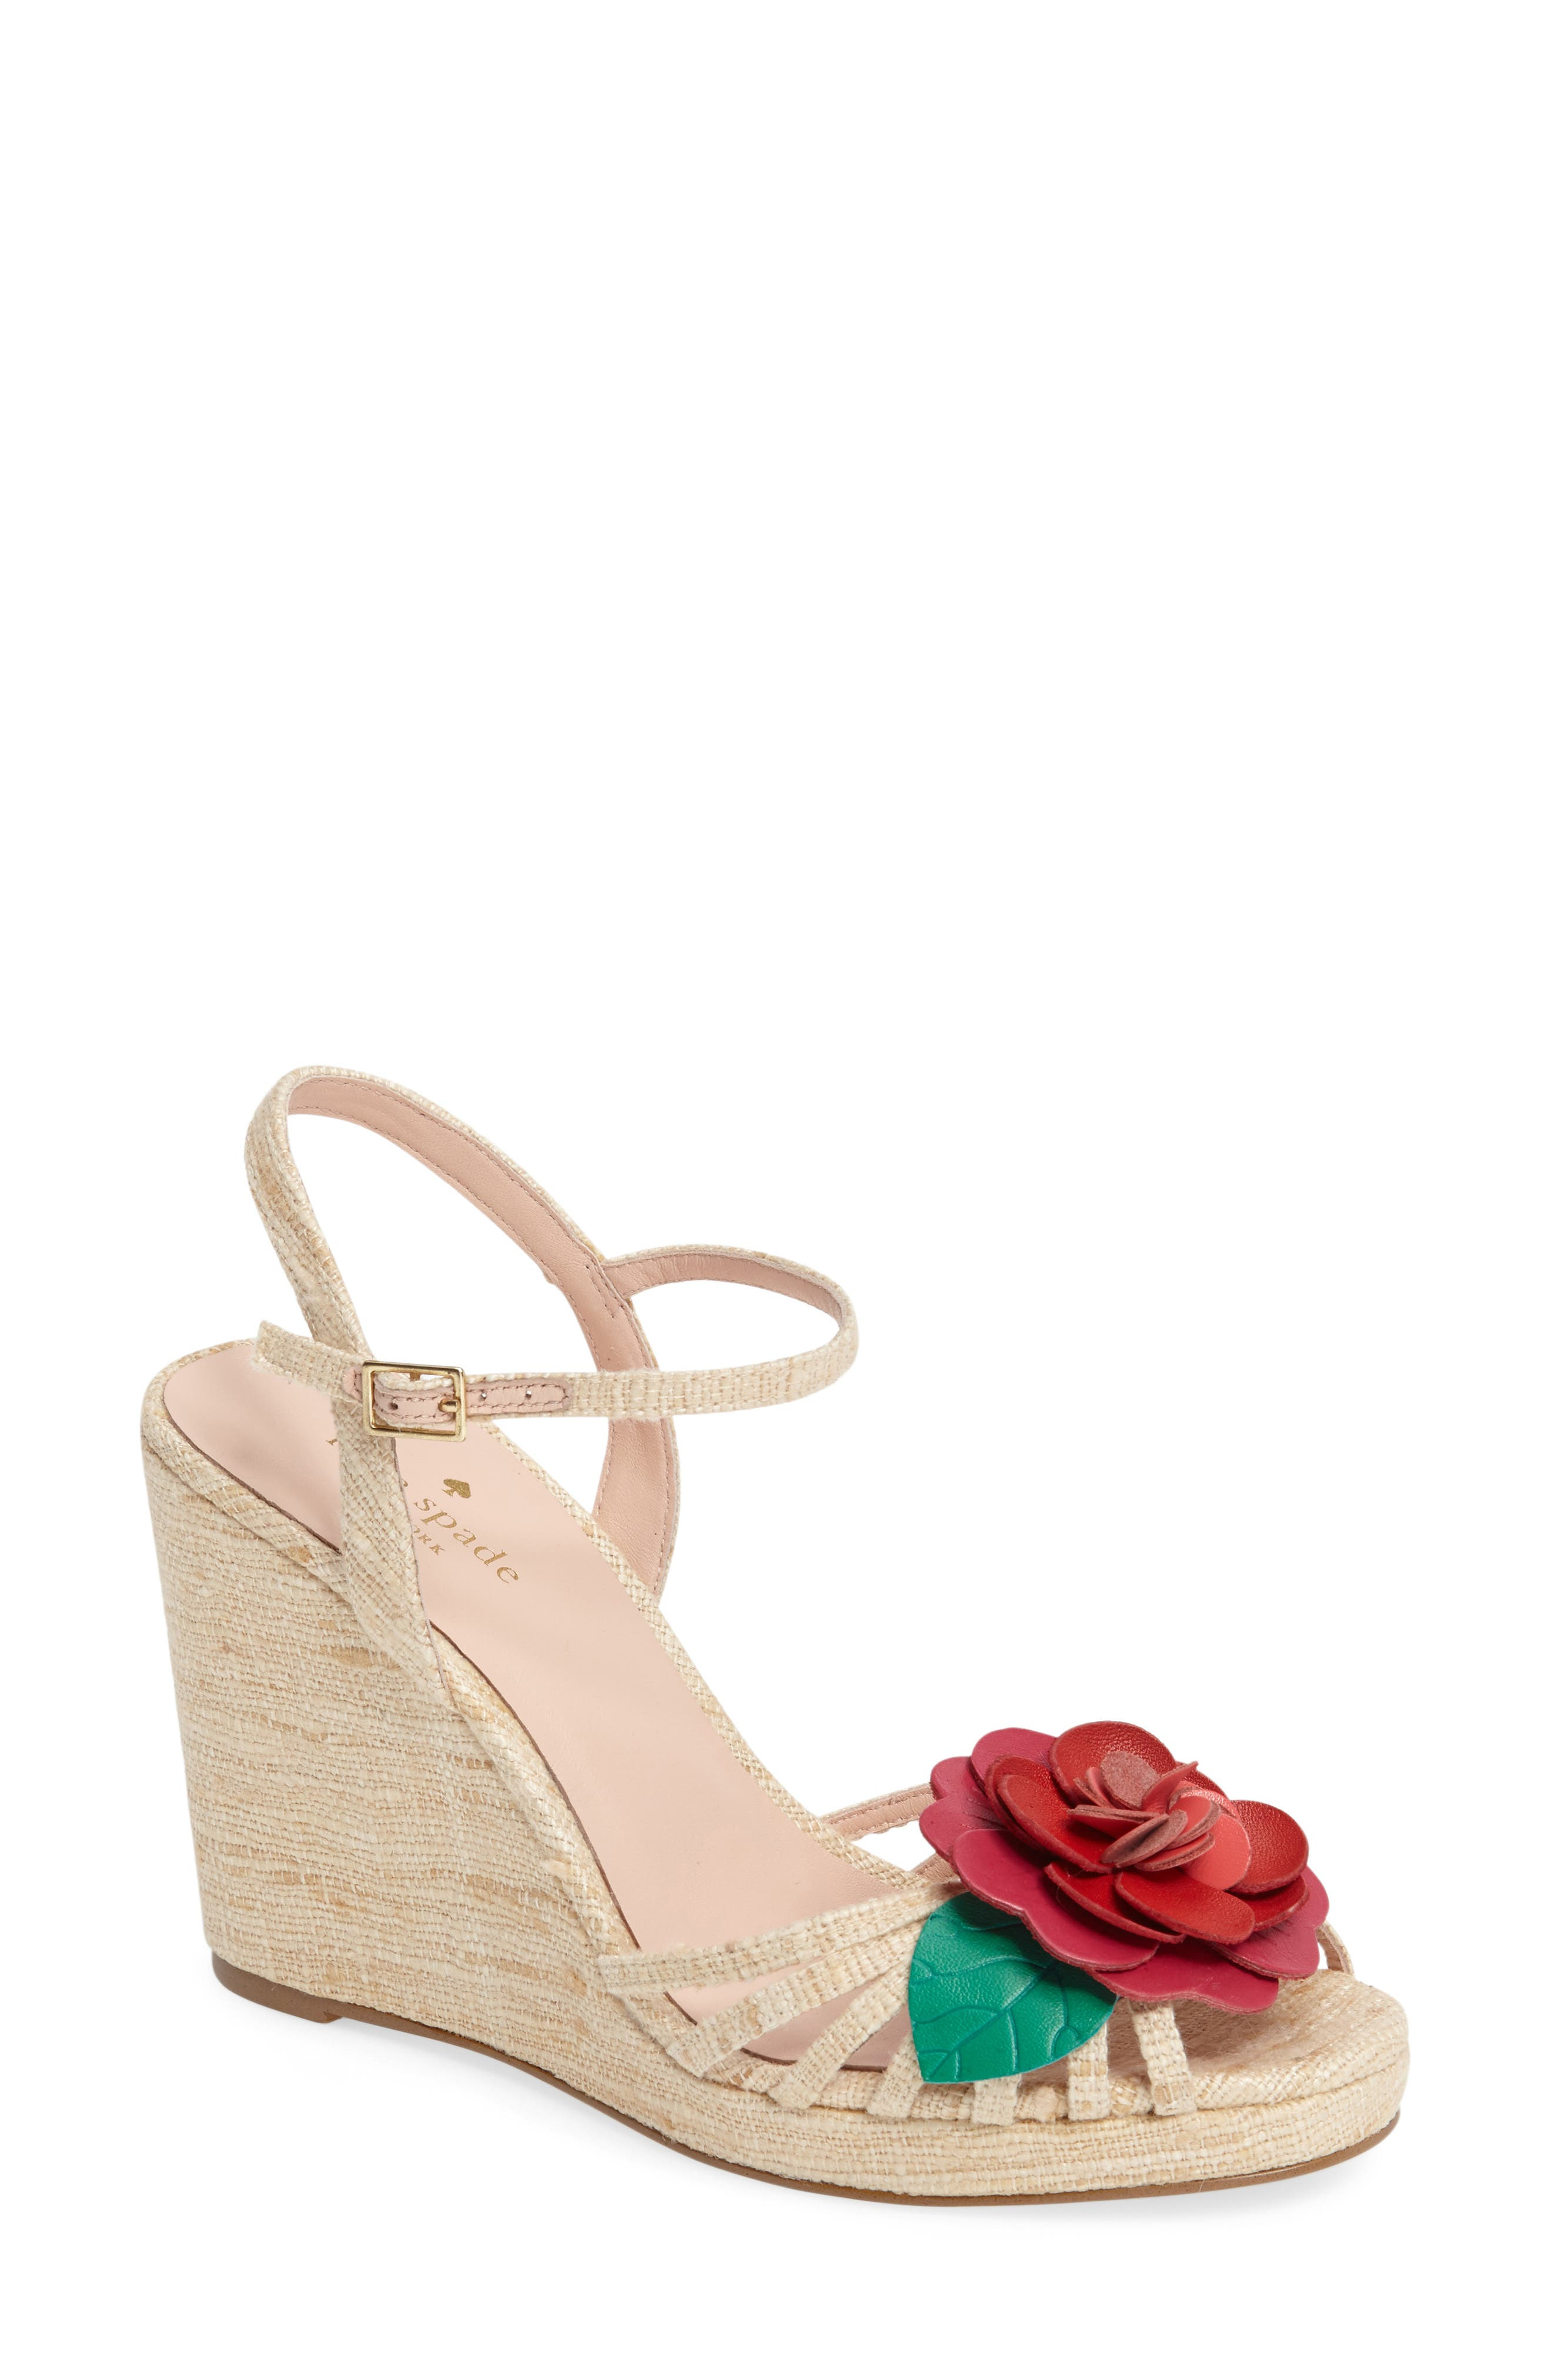 beekman strappy wedge sandal,                         Main,                         color, Natural Raw Silk